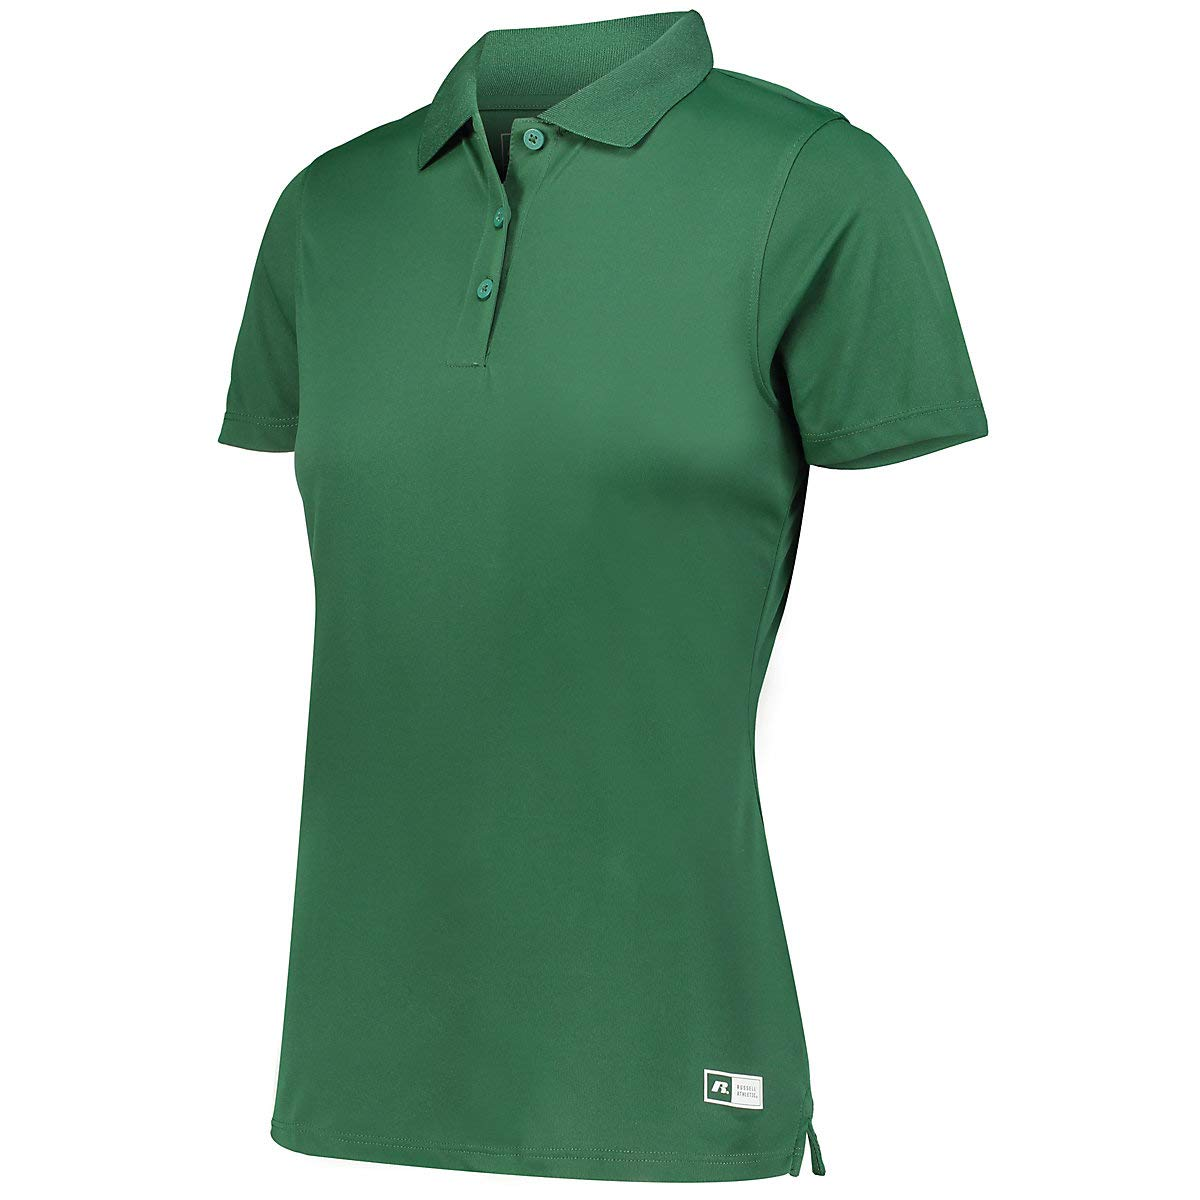 Russell Athletic. Dark Green. S. 7EPTUX. 00711311853840